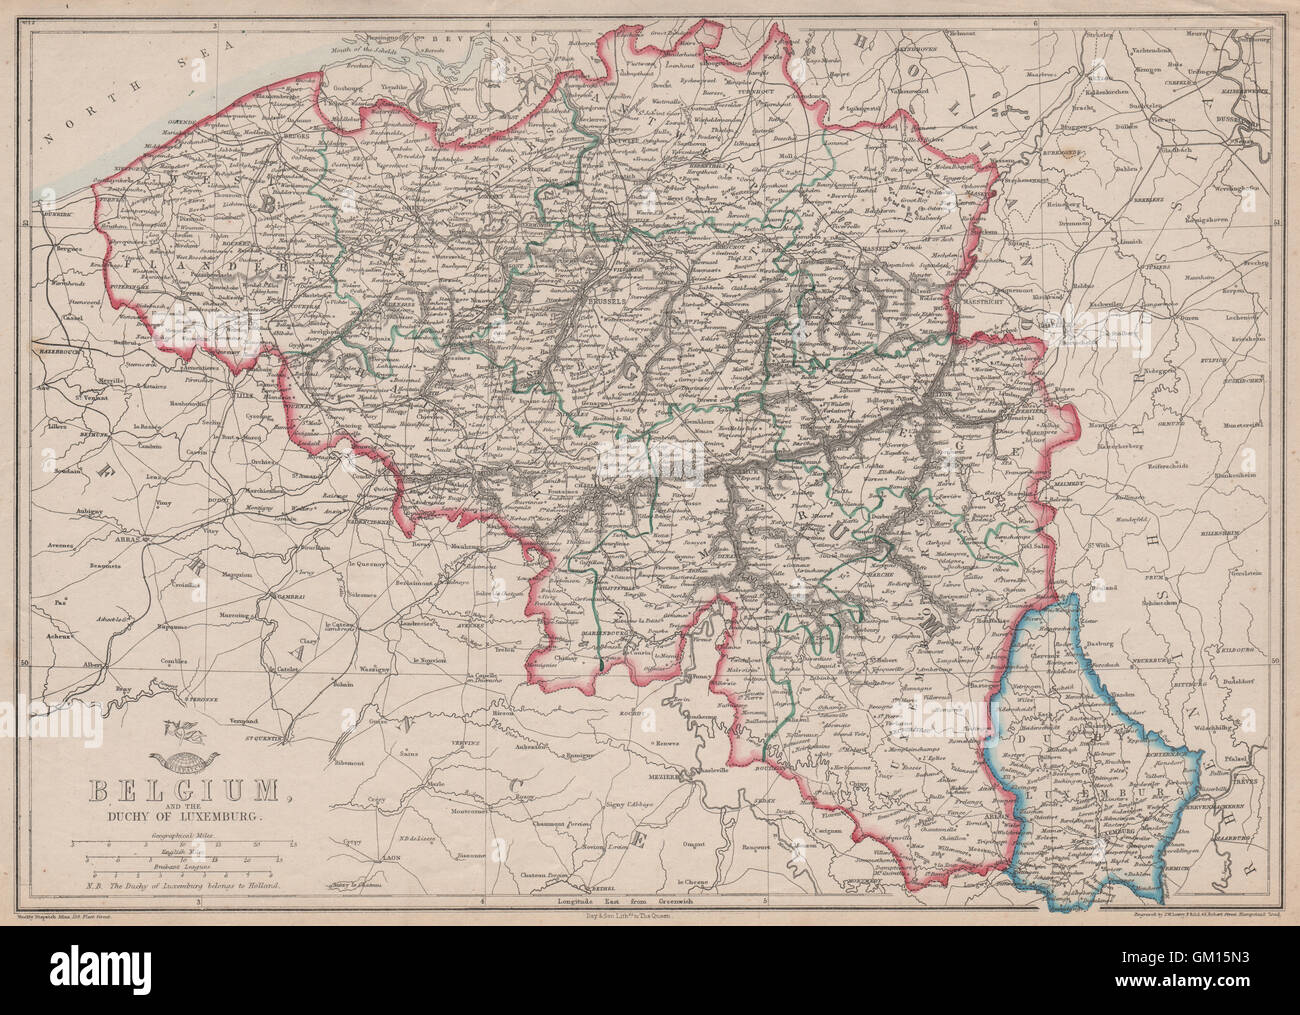 belgium luxembourg provinces rivers railways jw lowry dispatch 1863 map